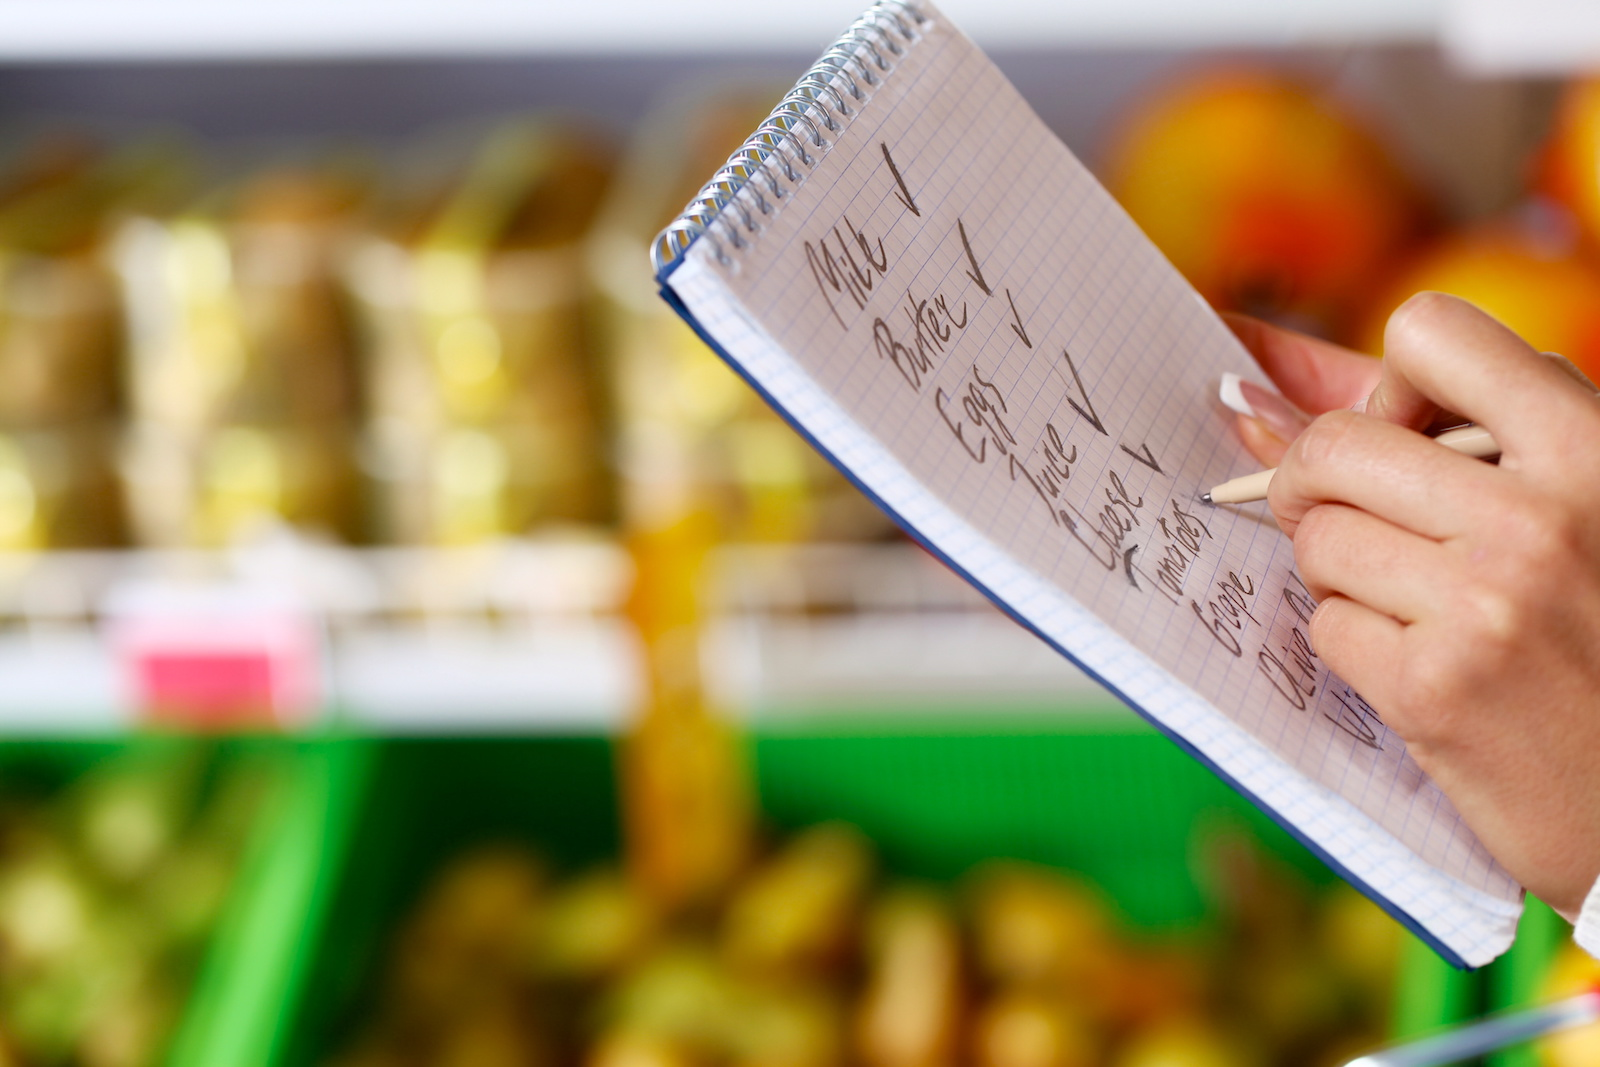 Shopping list with groceries on it while rows of food are in the background